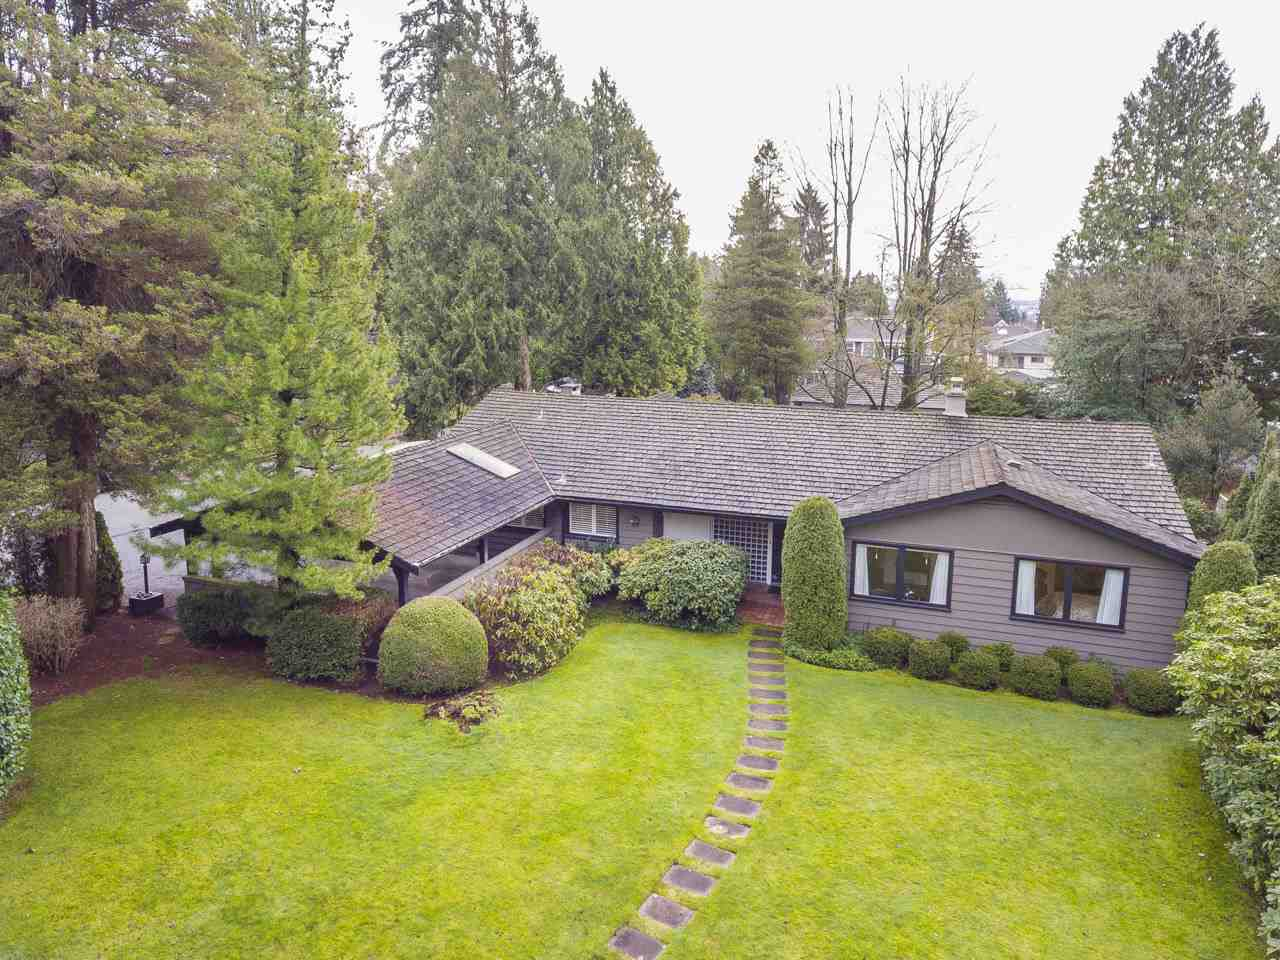 1308 W 54TH AVENUE - South Granville House/Single Family for sale, 4 Bedrooms (R2528346) - #3